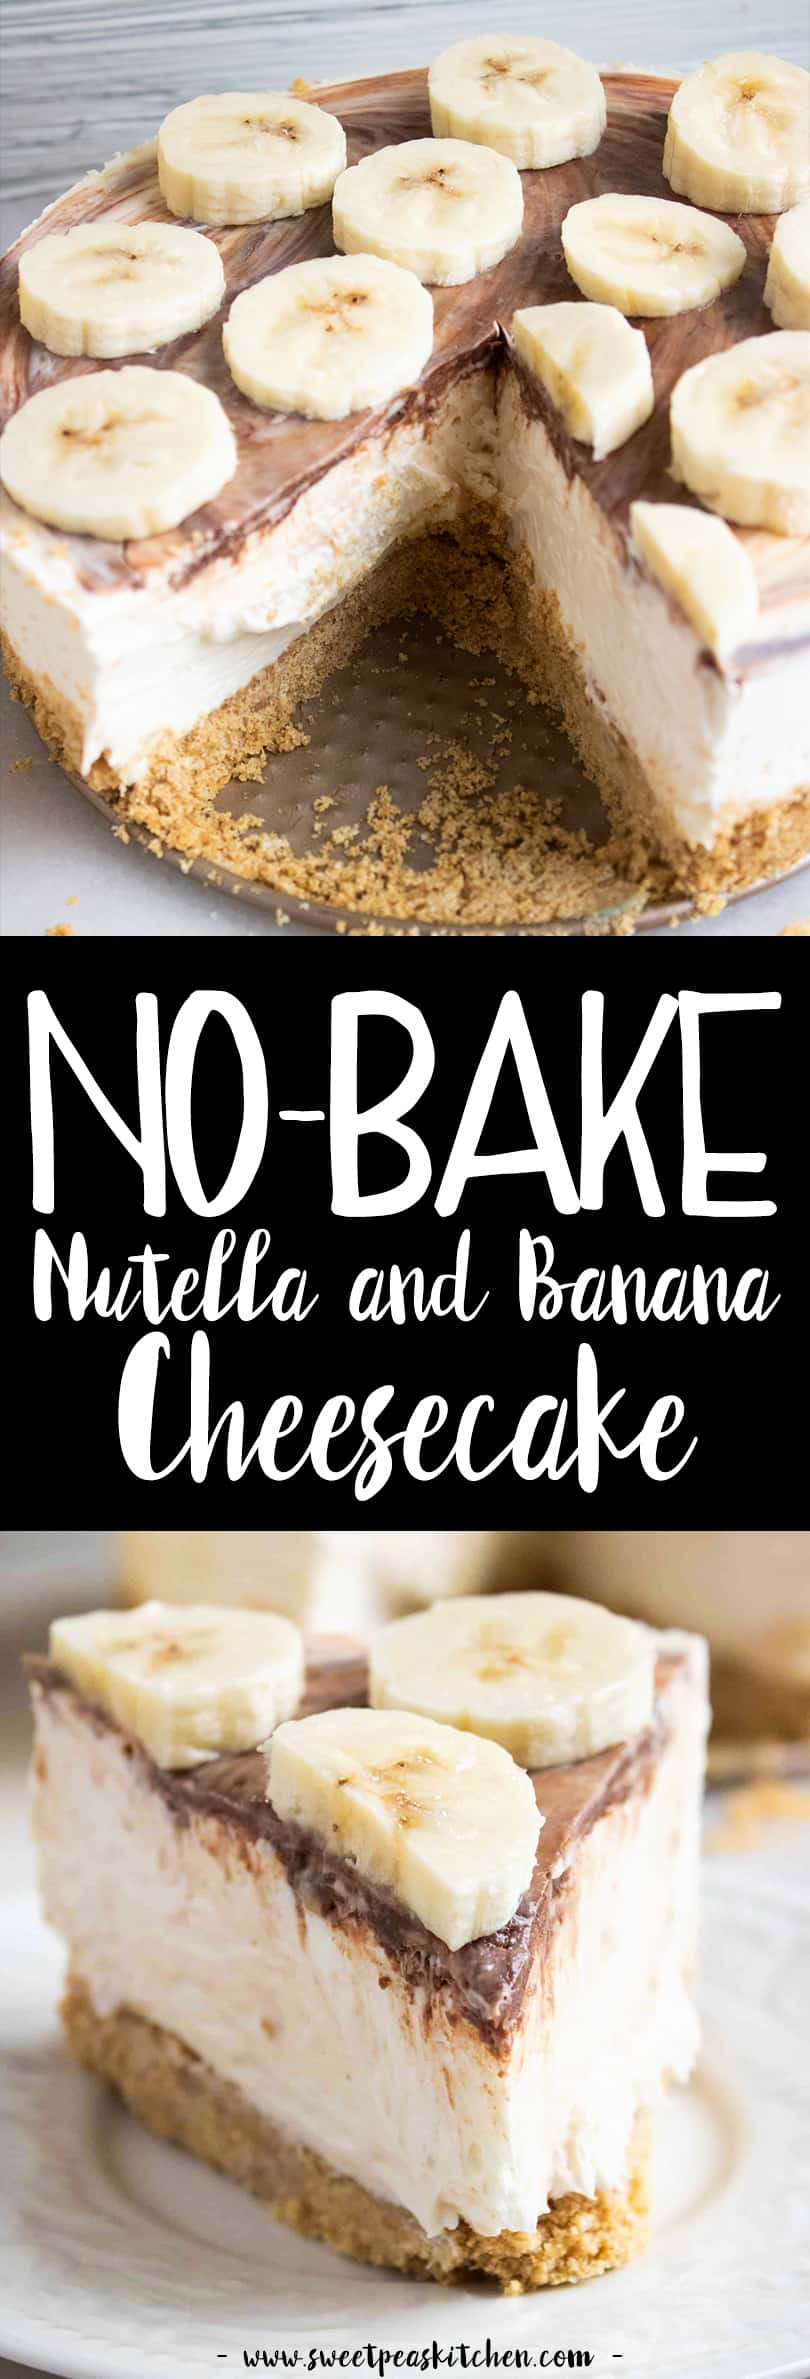 No Bake Nutella Cheesecake with Banana